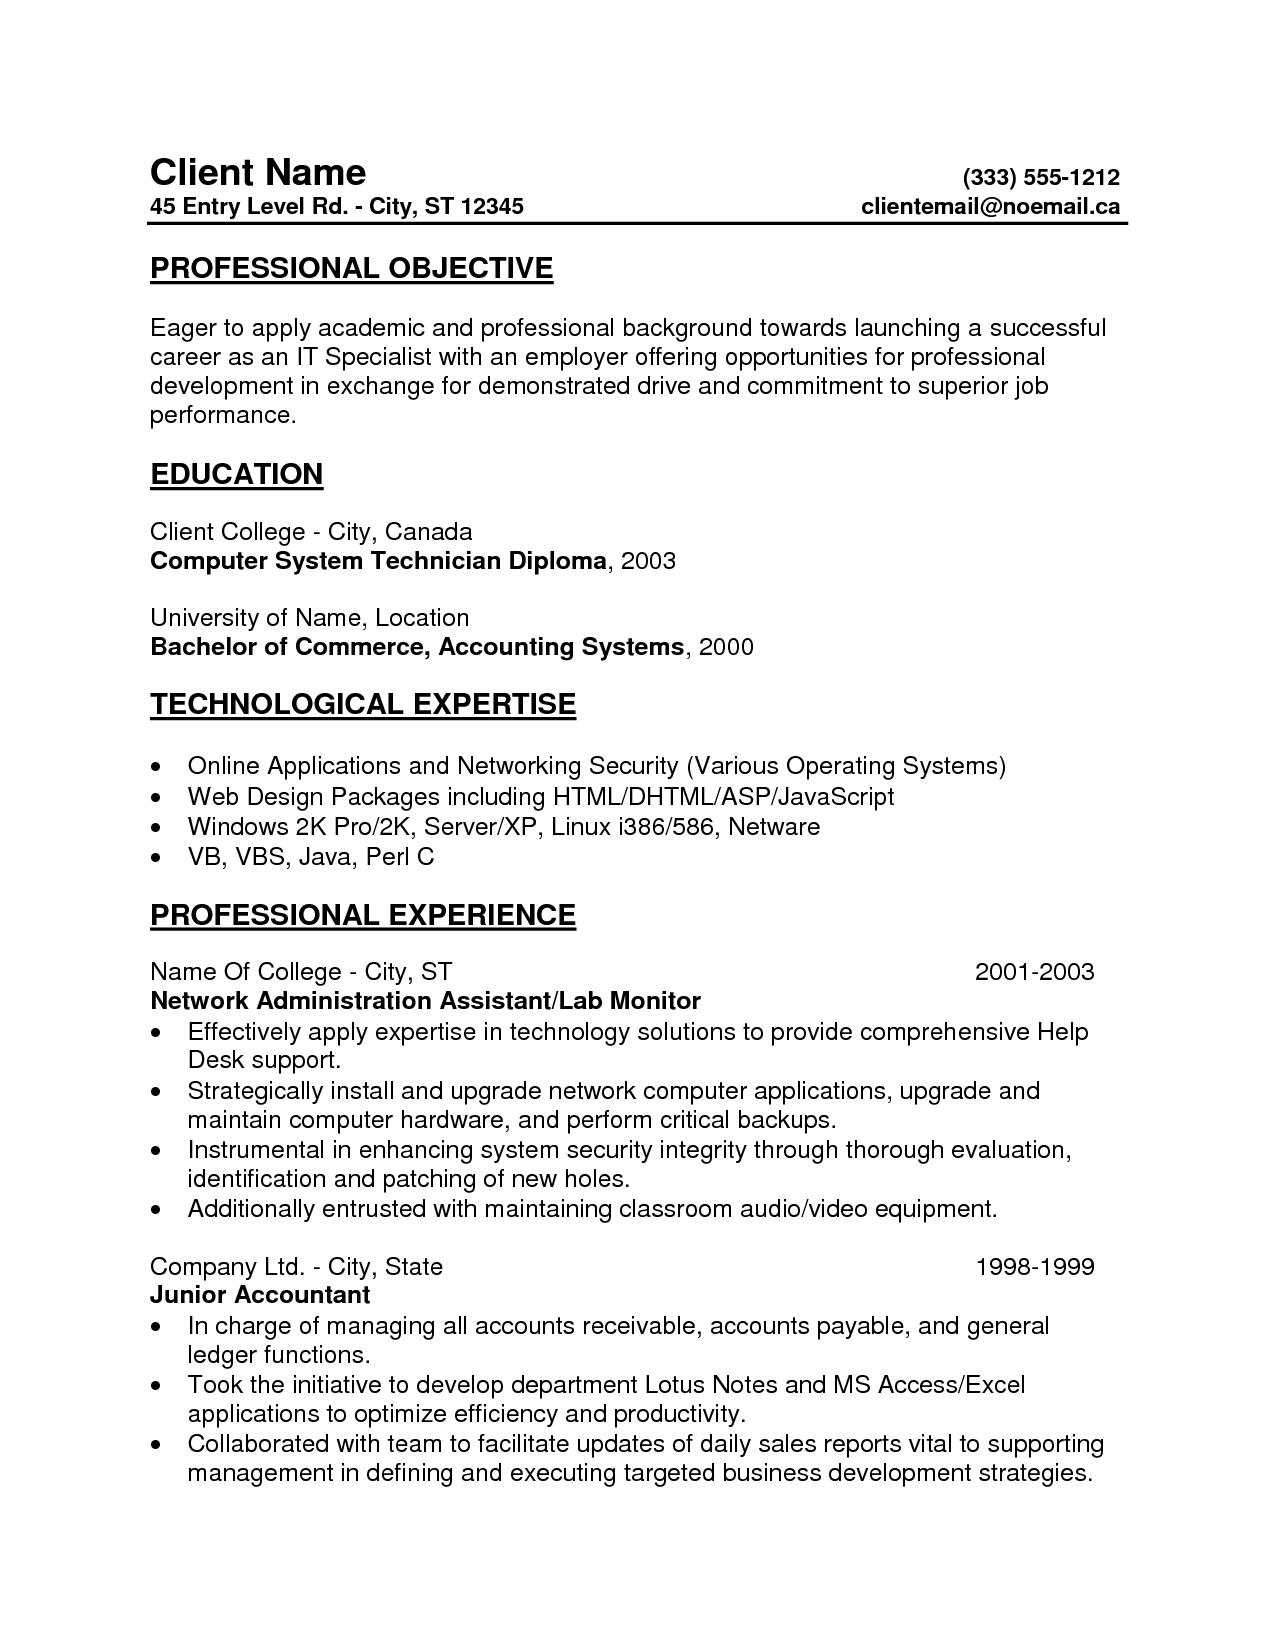 Entry Level Dental Assistant Resume Template